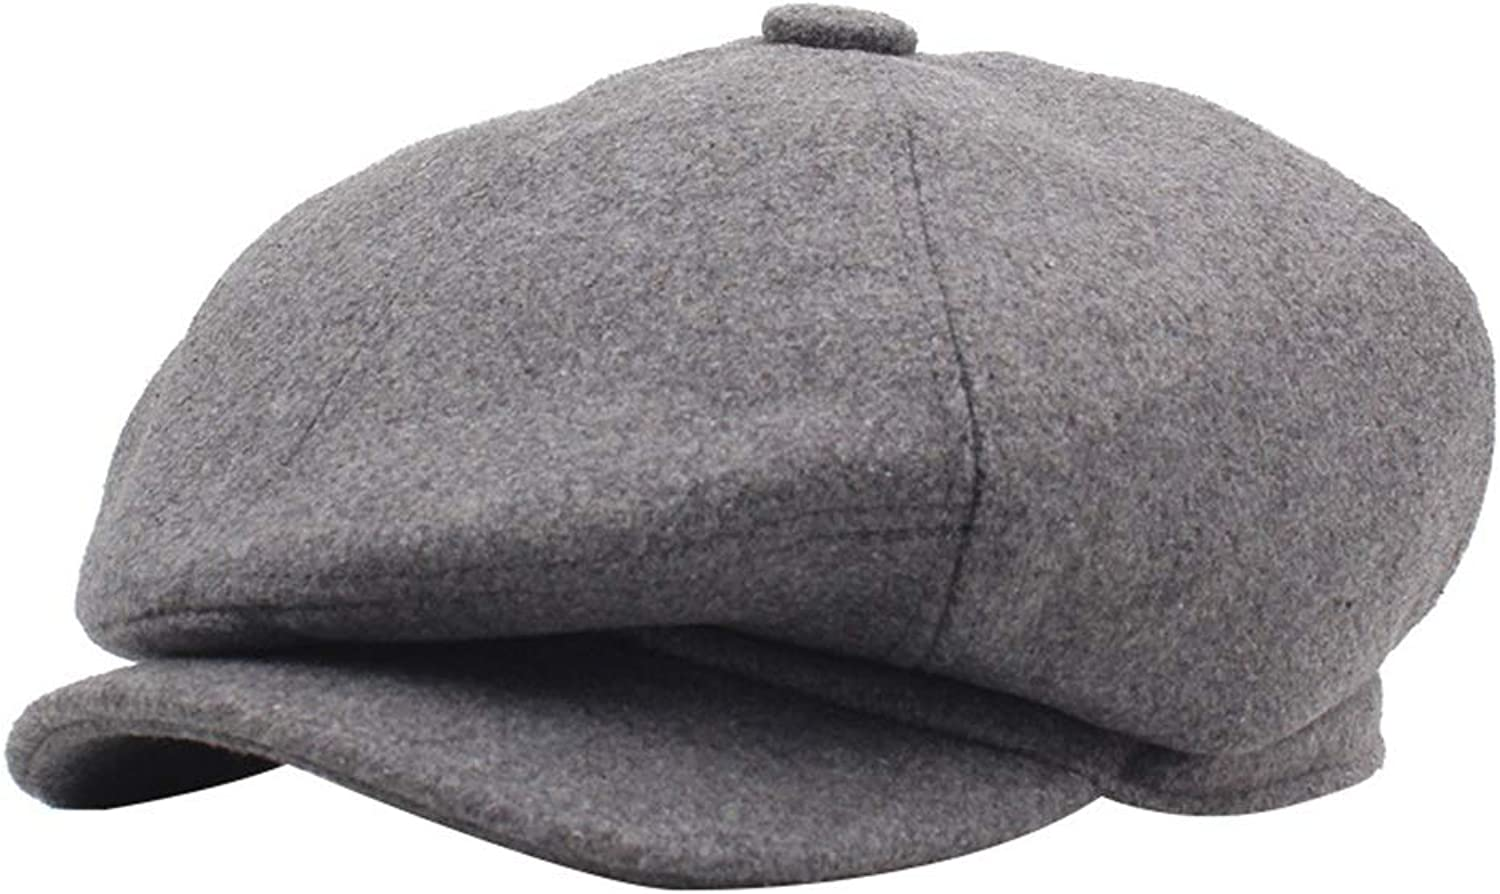 Men and Women Berets Autumn and Winter Warm Hat Old Hat Cap.